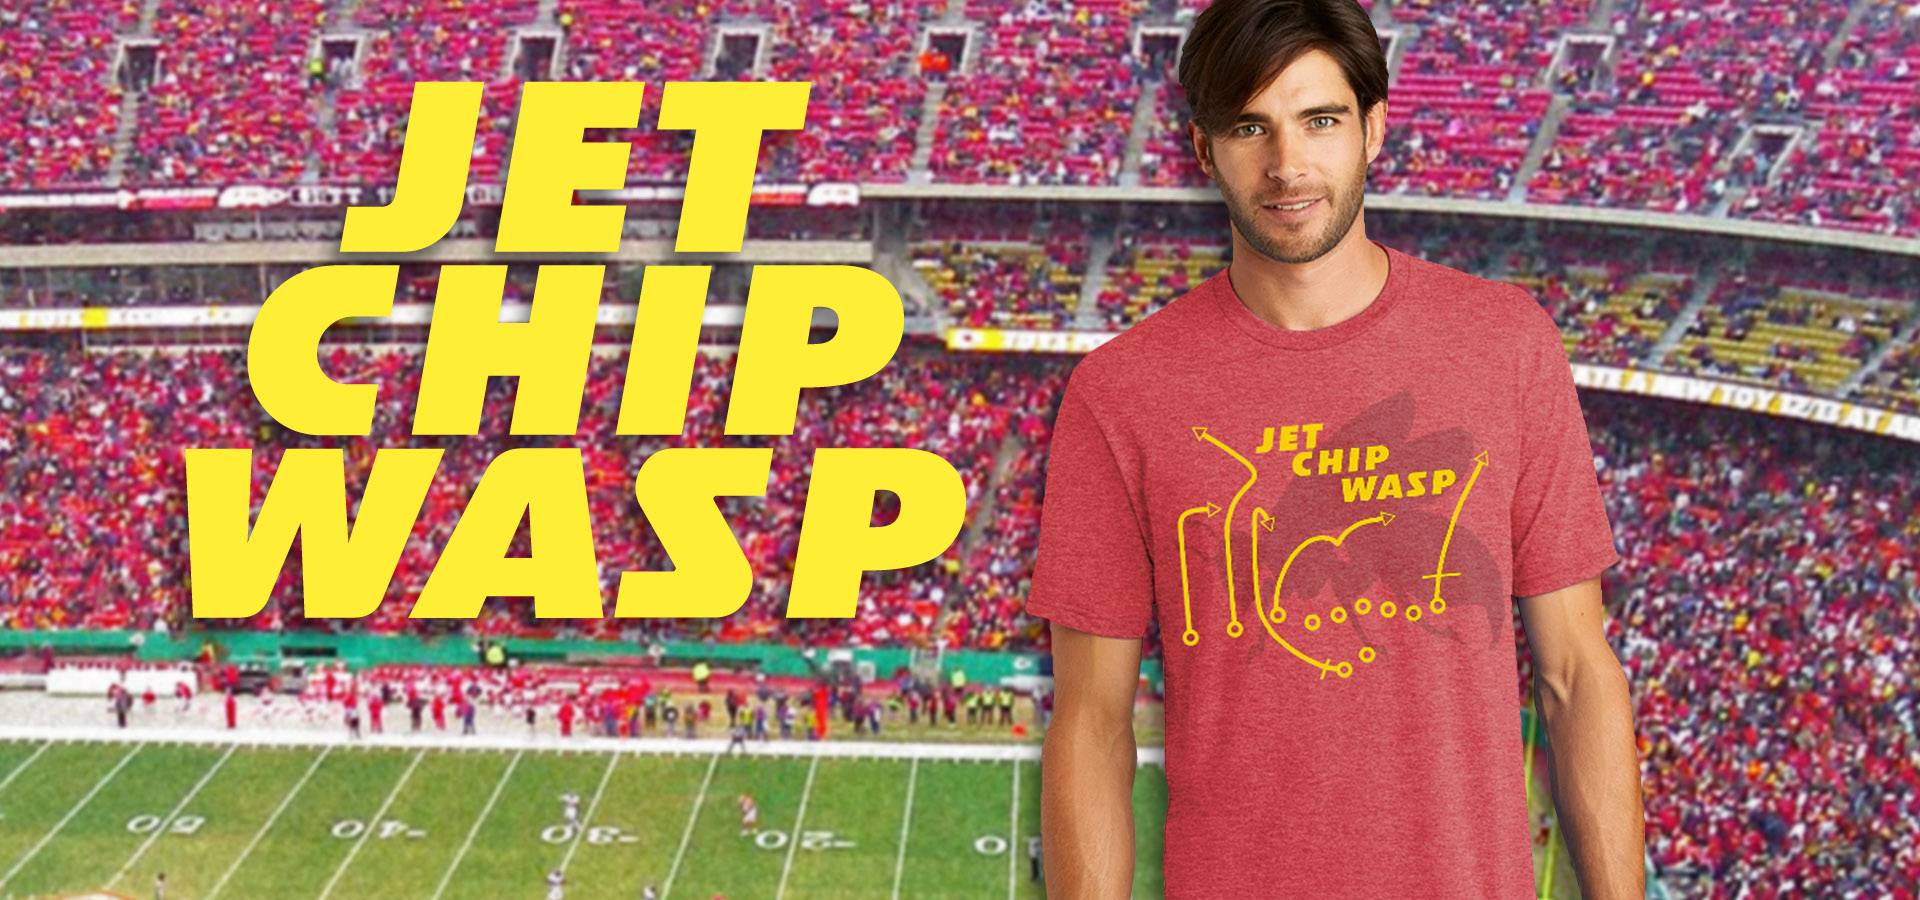 Jet Chip Wasp T-Shirts